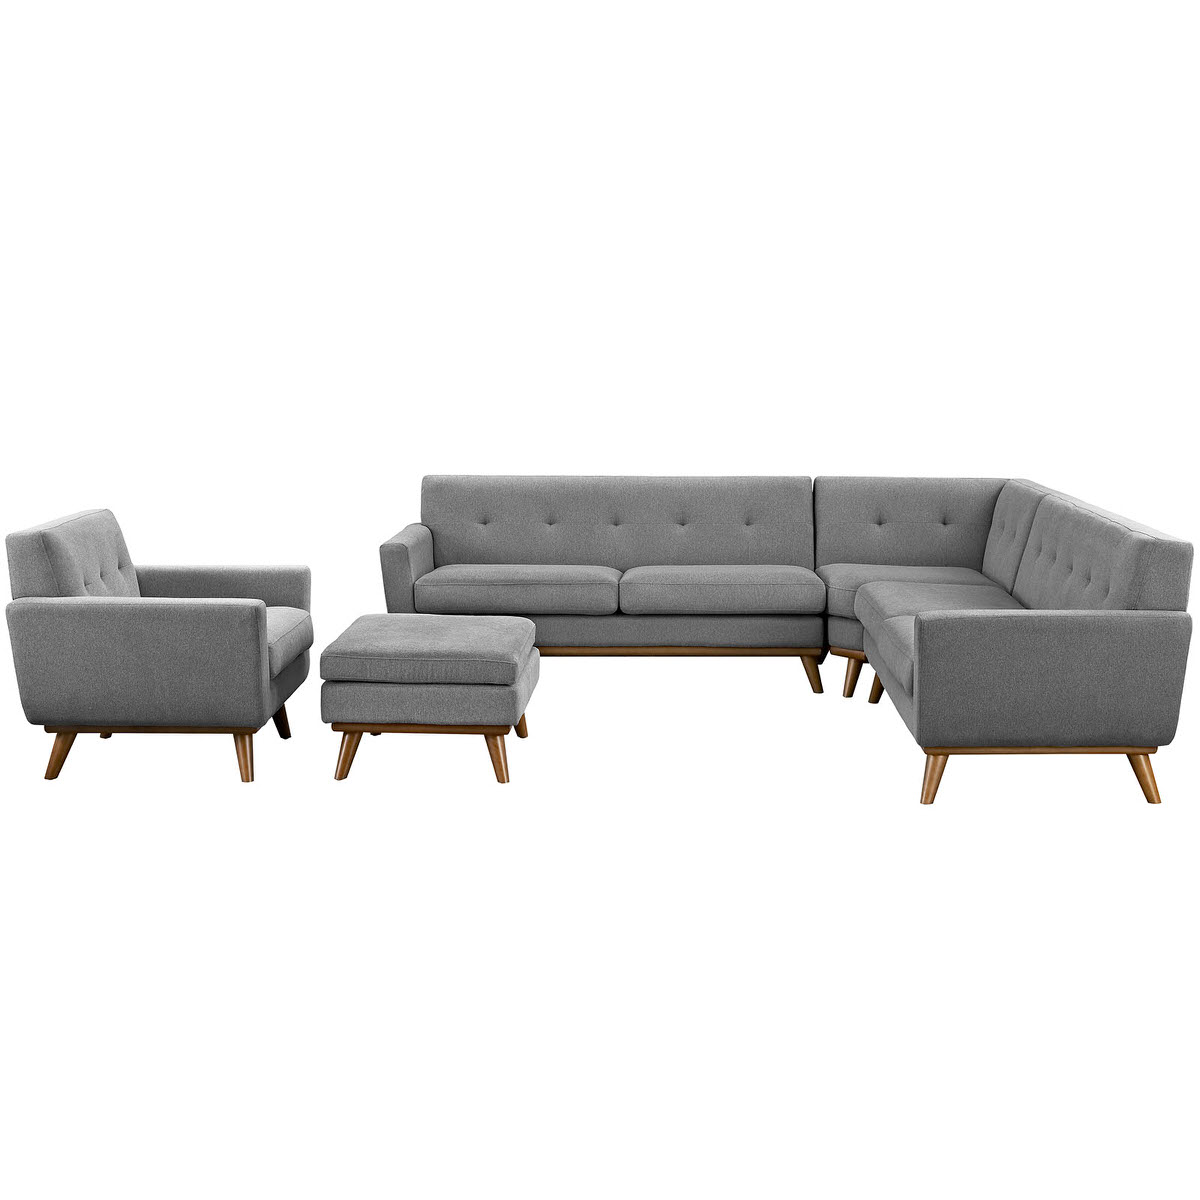 Engage 5 Piece Sectional Sofa Gray by Modern Living